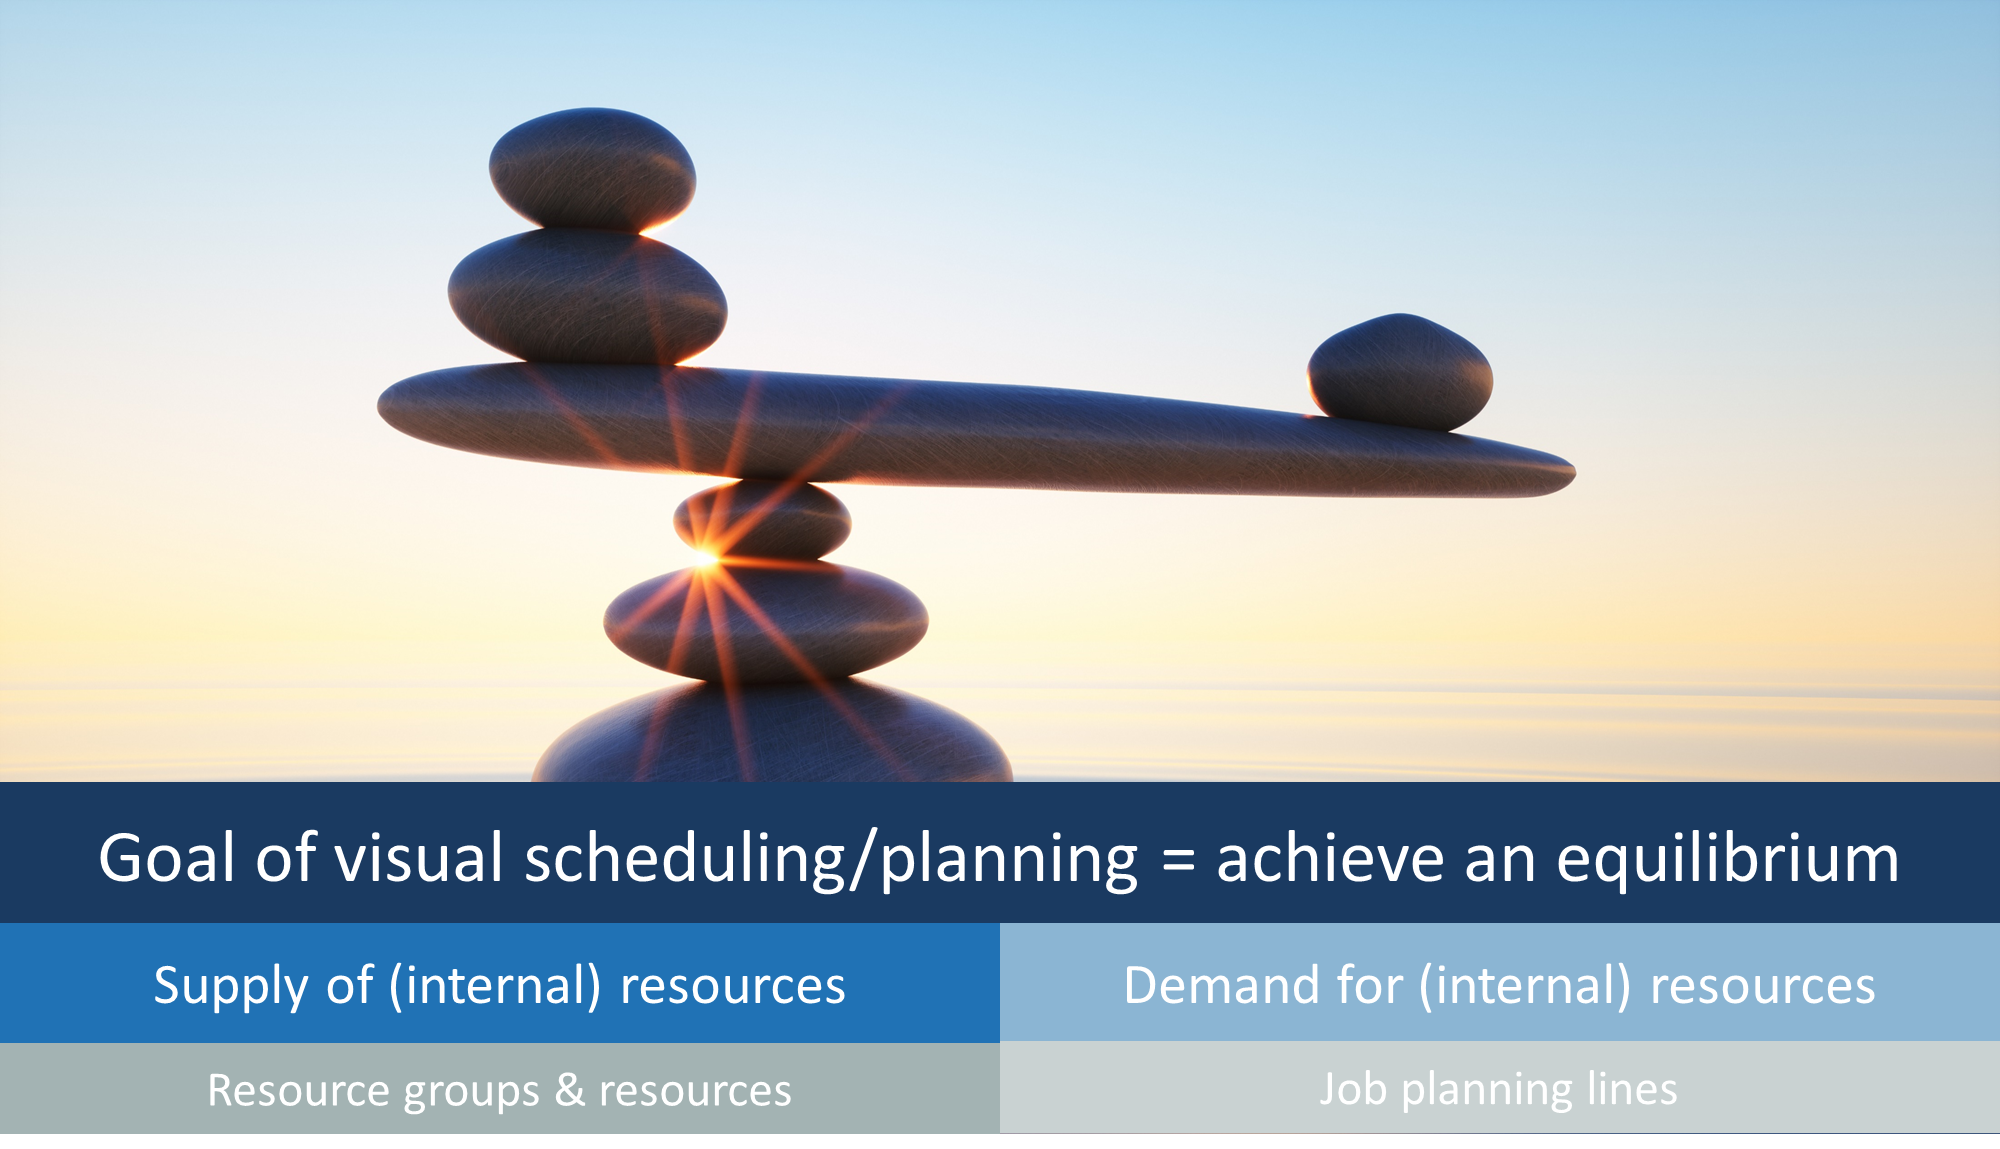 Project planning and resource scheduling equilibrium